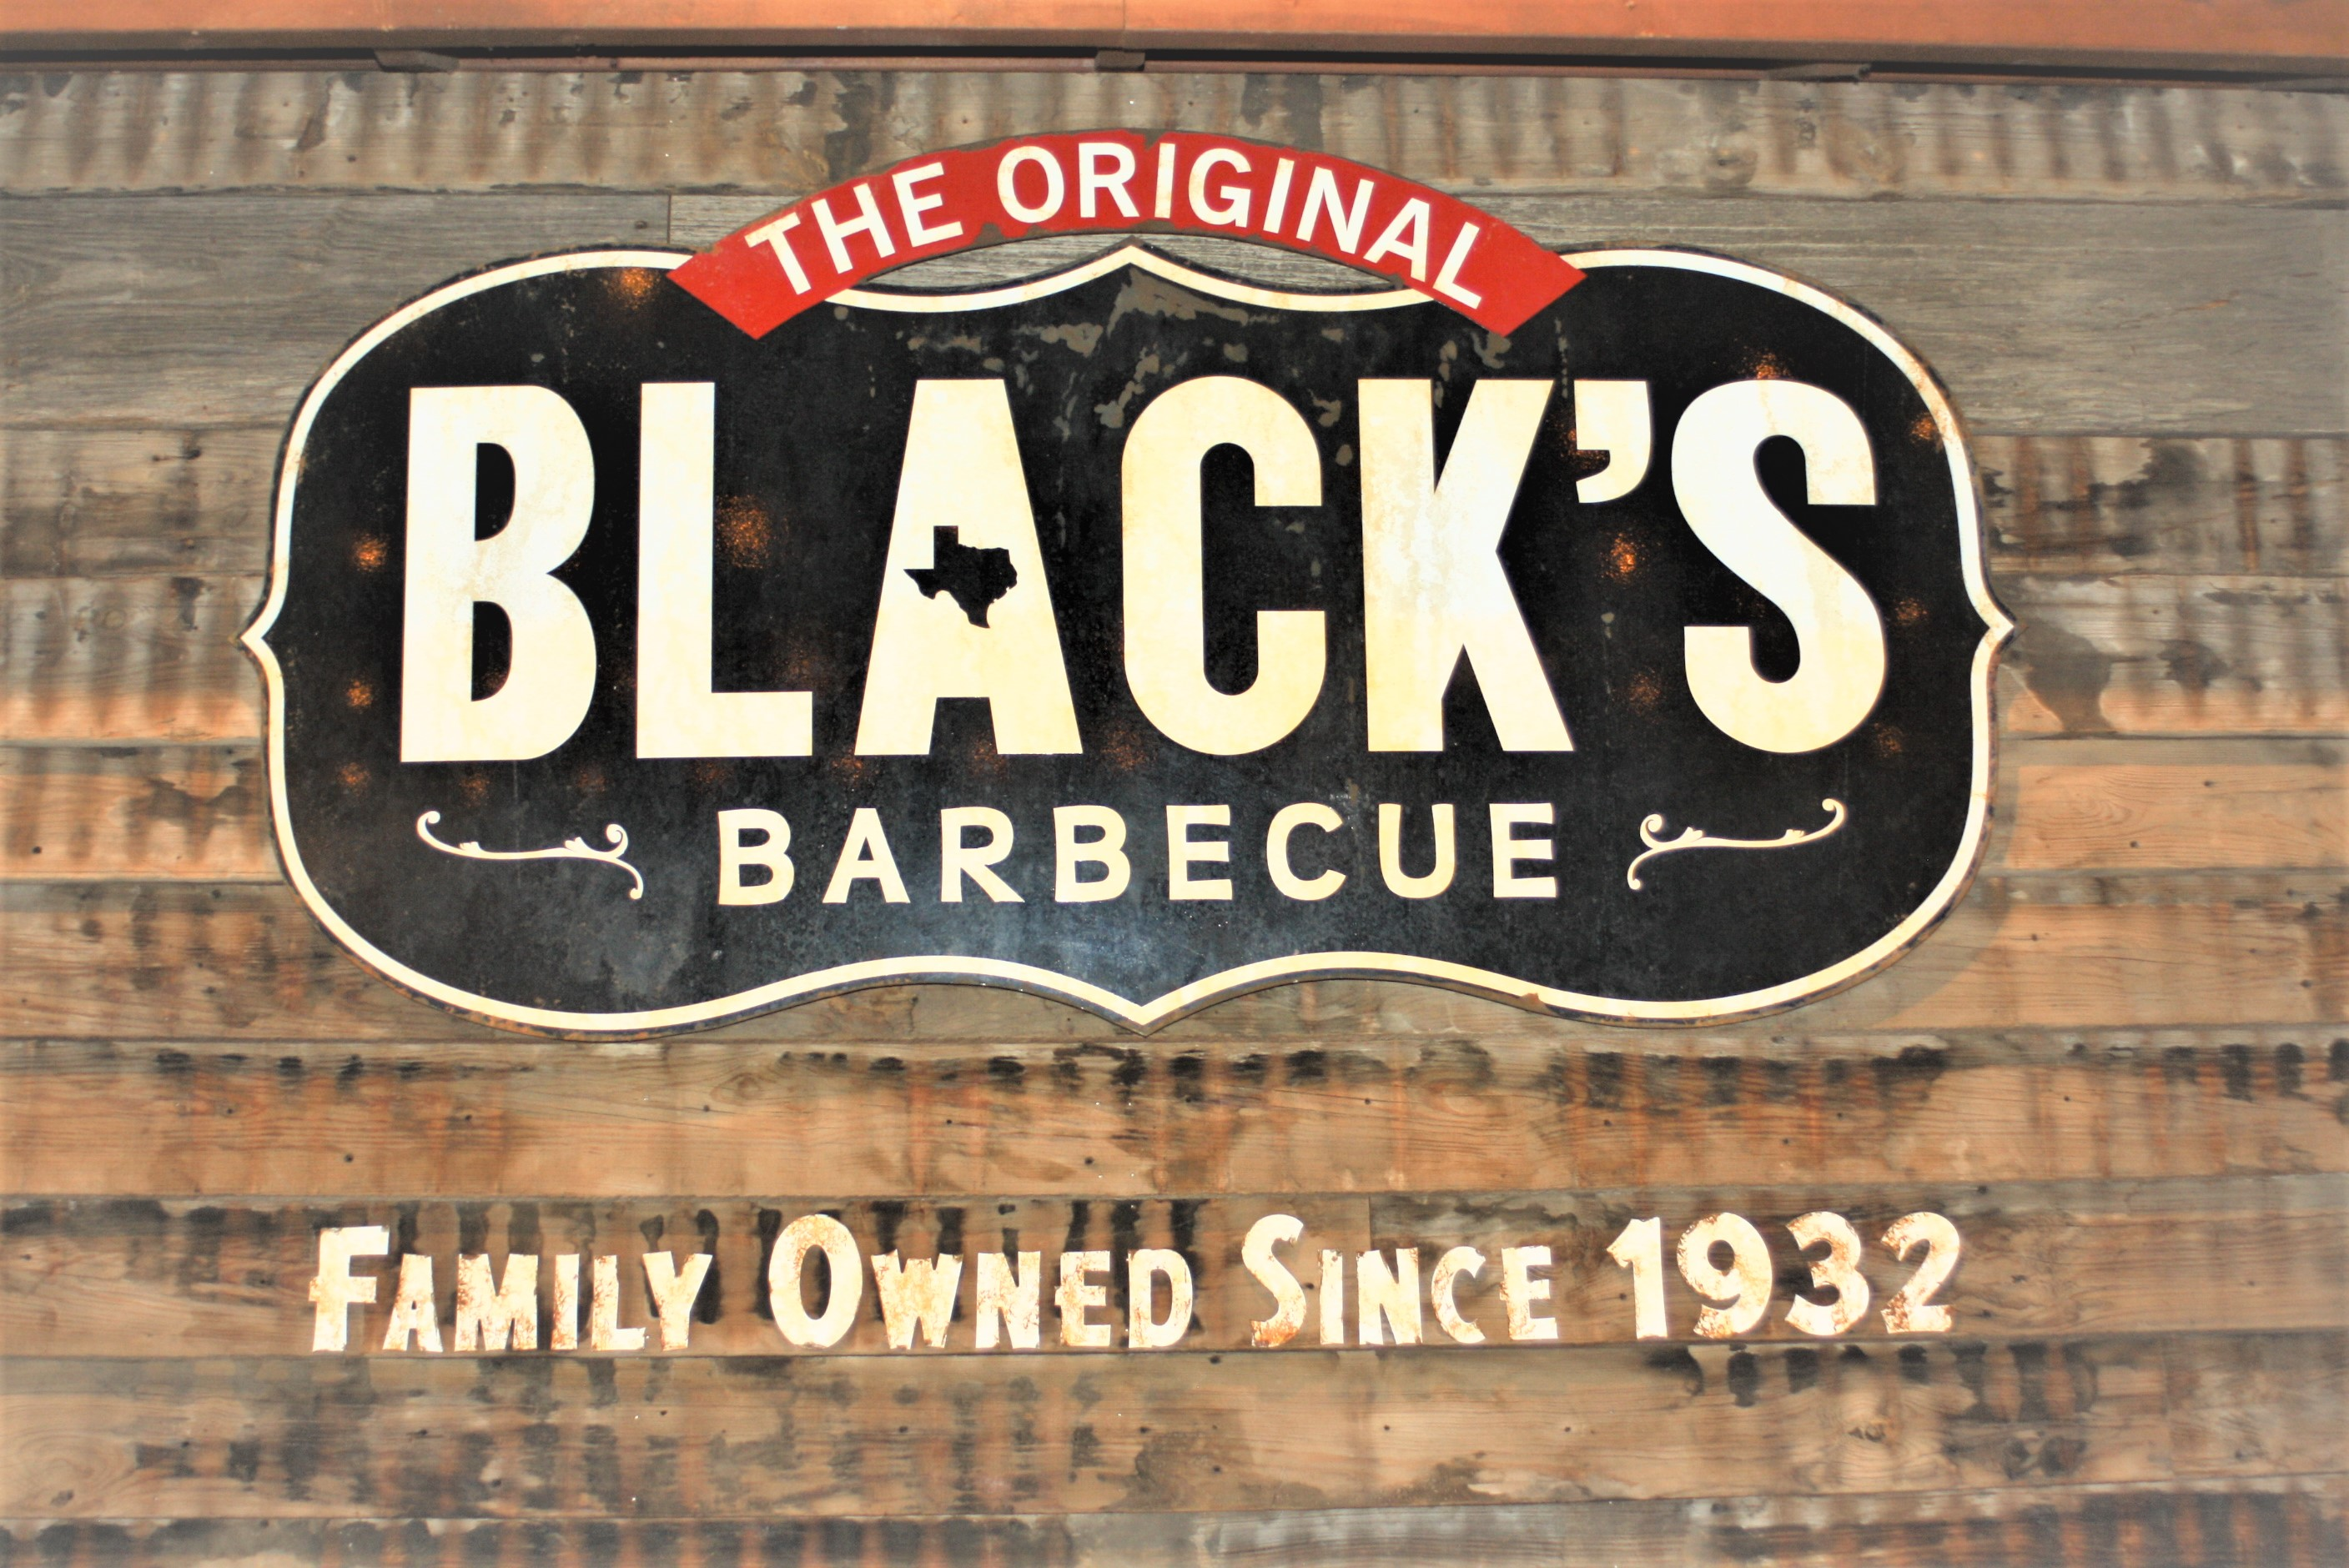 The Original Black's Barbecue